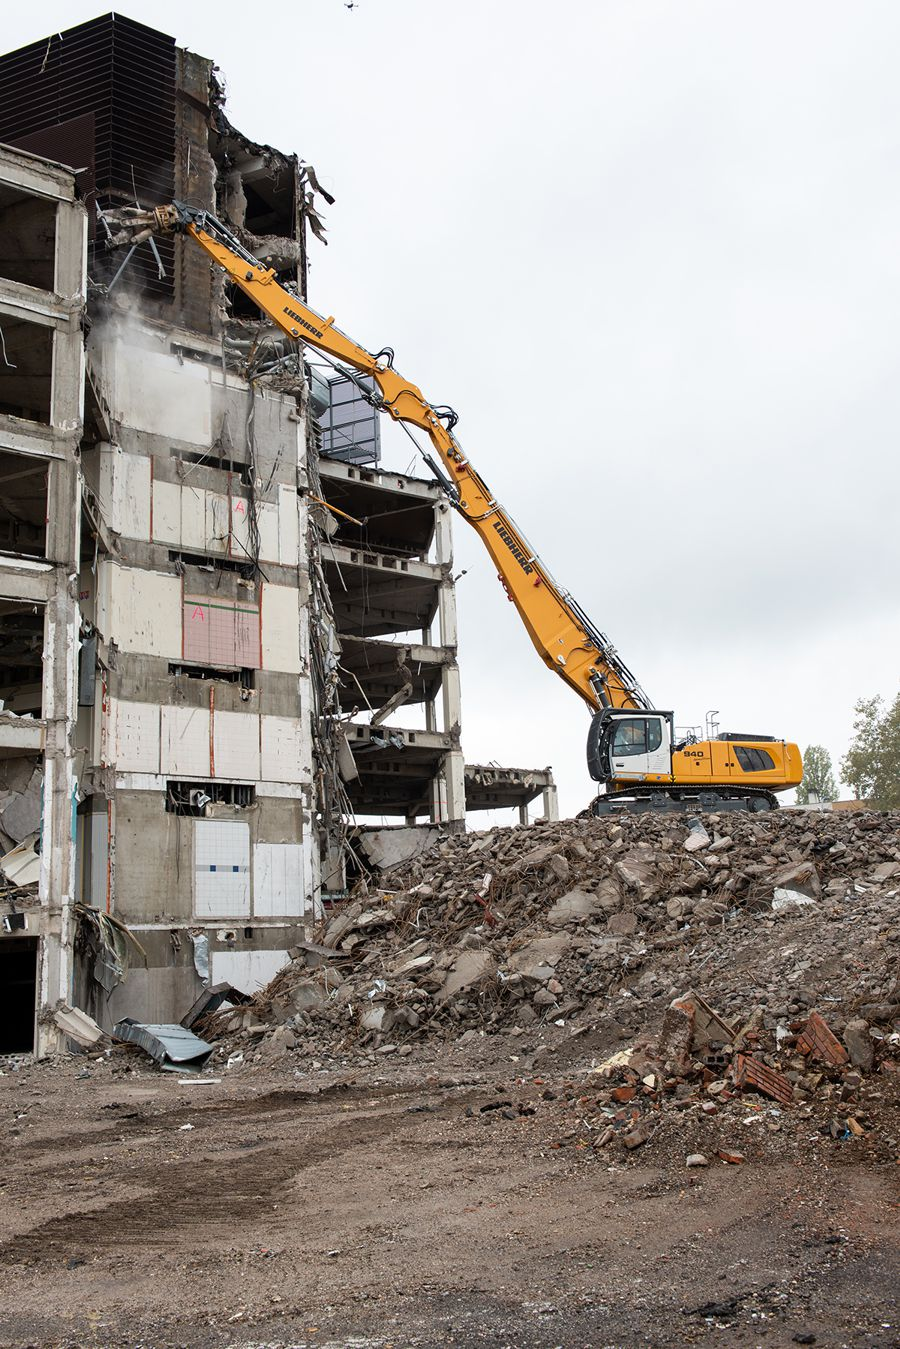 With the R 940 Demolition, Liebherr complements its existing range of demolition excavators R 950 and R 960